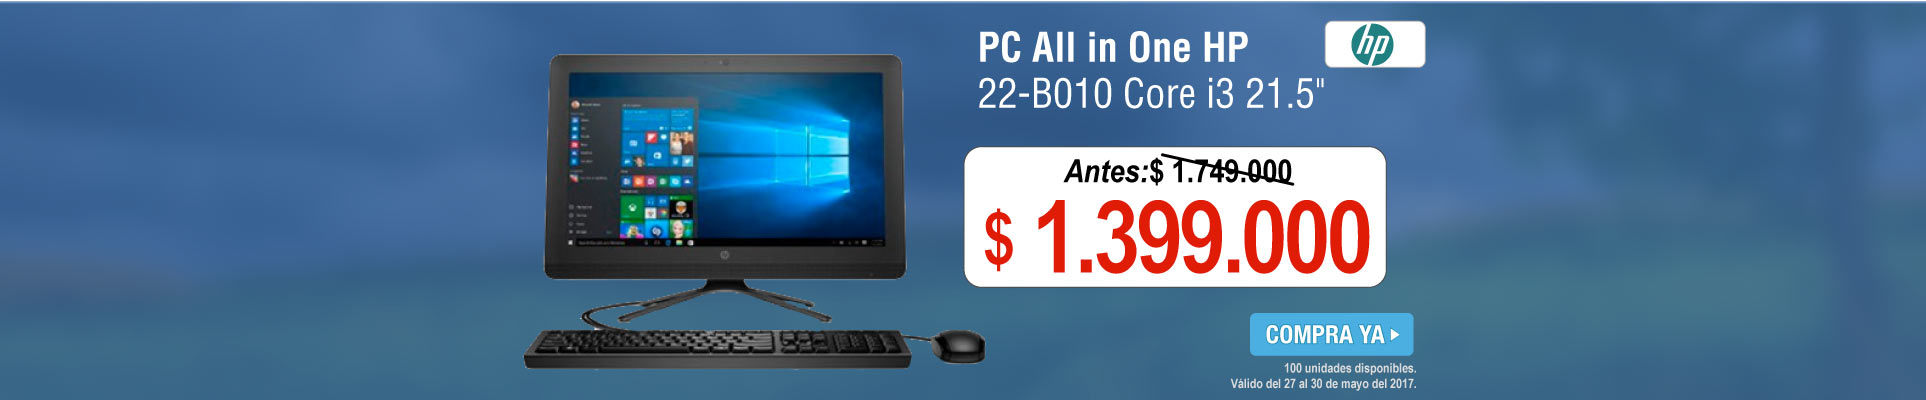 PC All in One HP 22-B010 Core i3 21.5 - banner principal